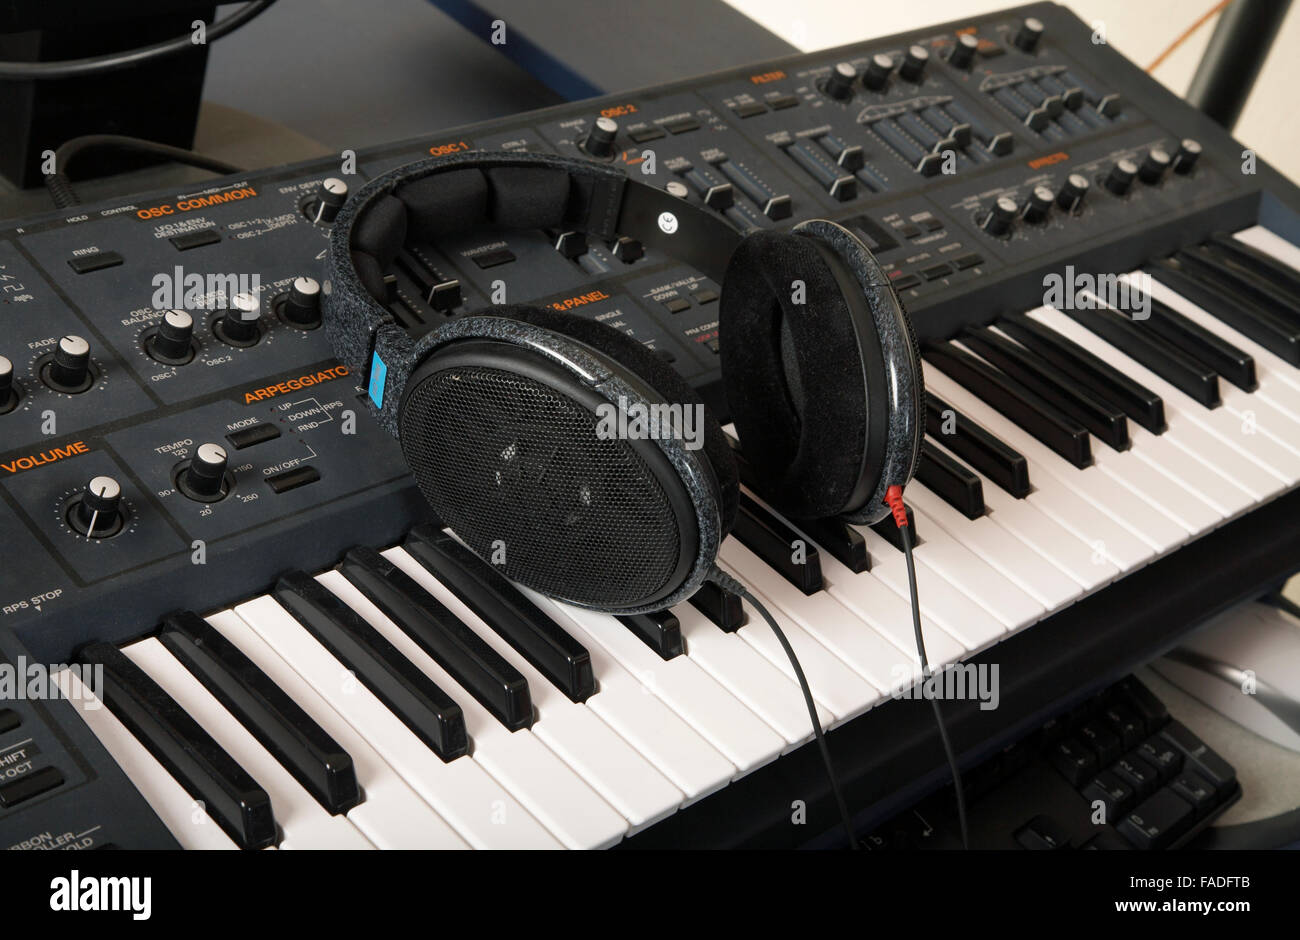 The synthesizer and headphones lay on it - Stock Image